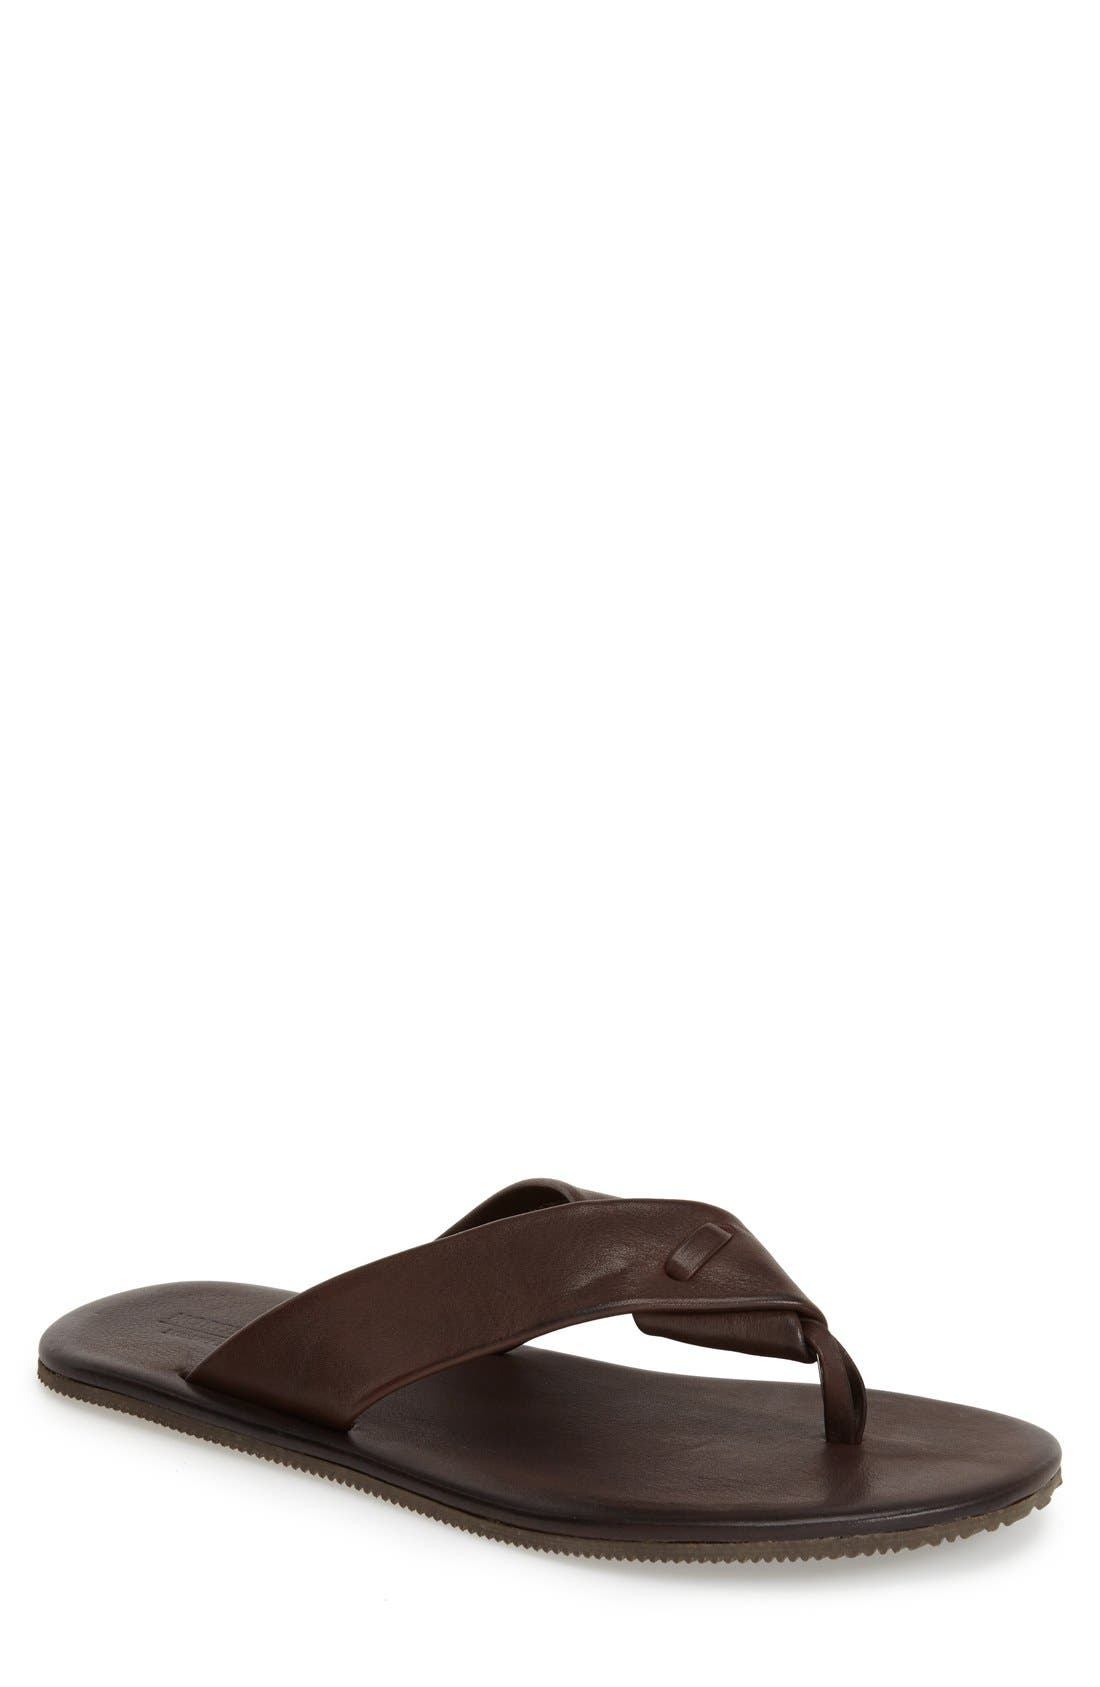 Alternate Image 1 Selected - Nordstrom Men's Shop 'Breeze' Flip Flop (Men)